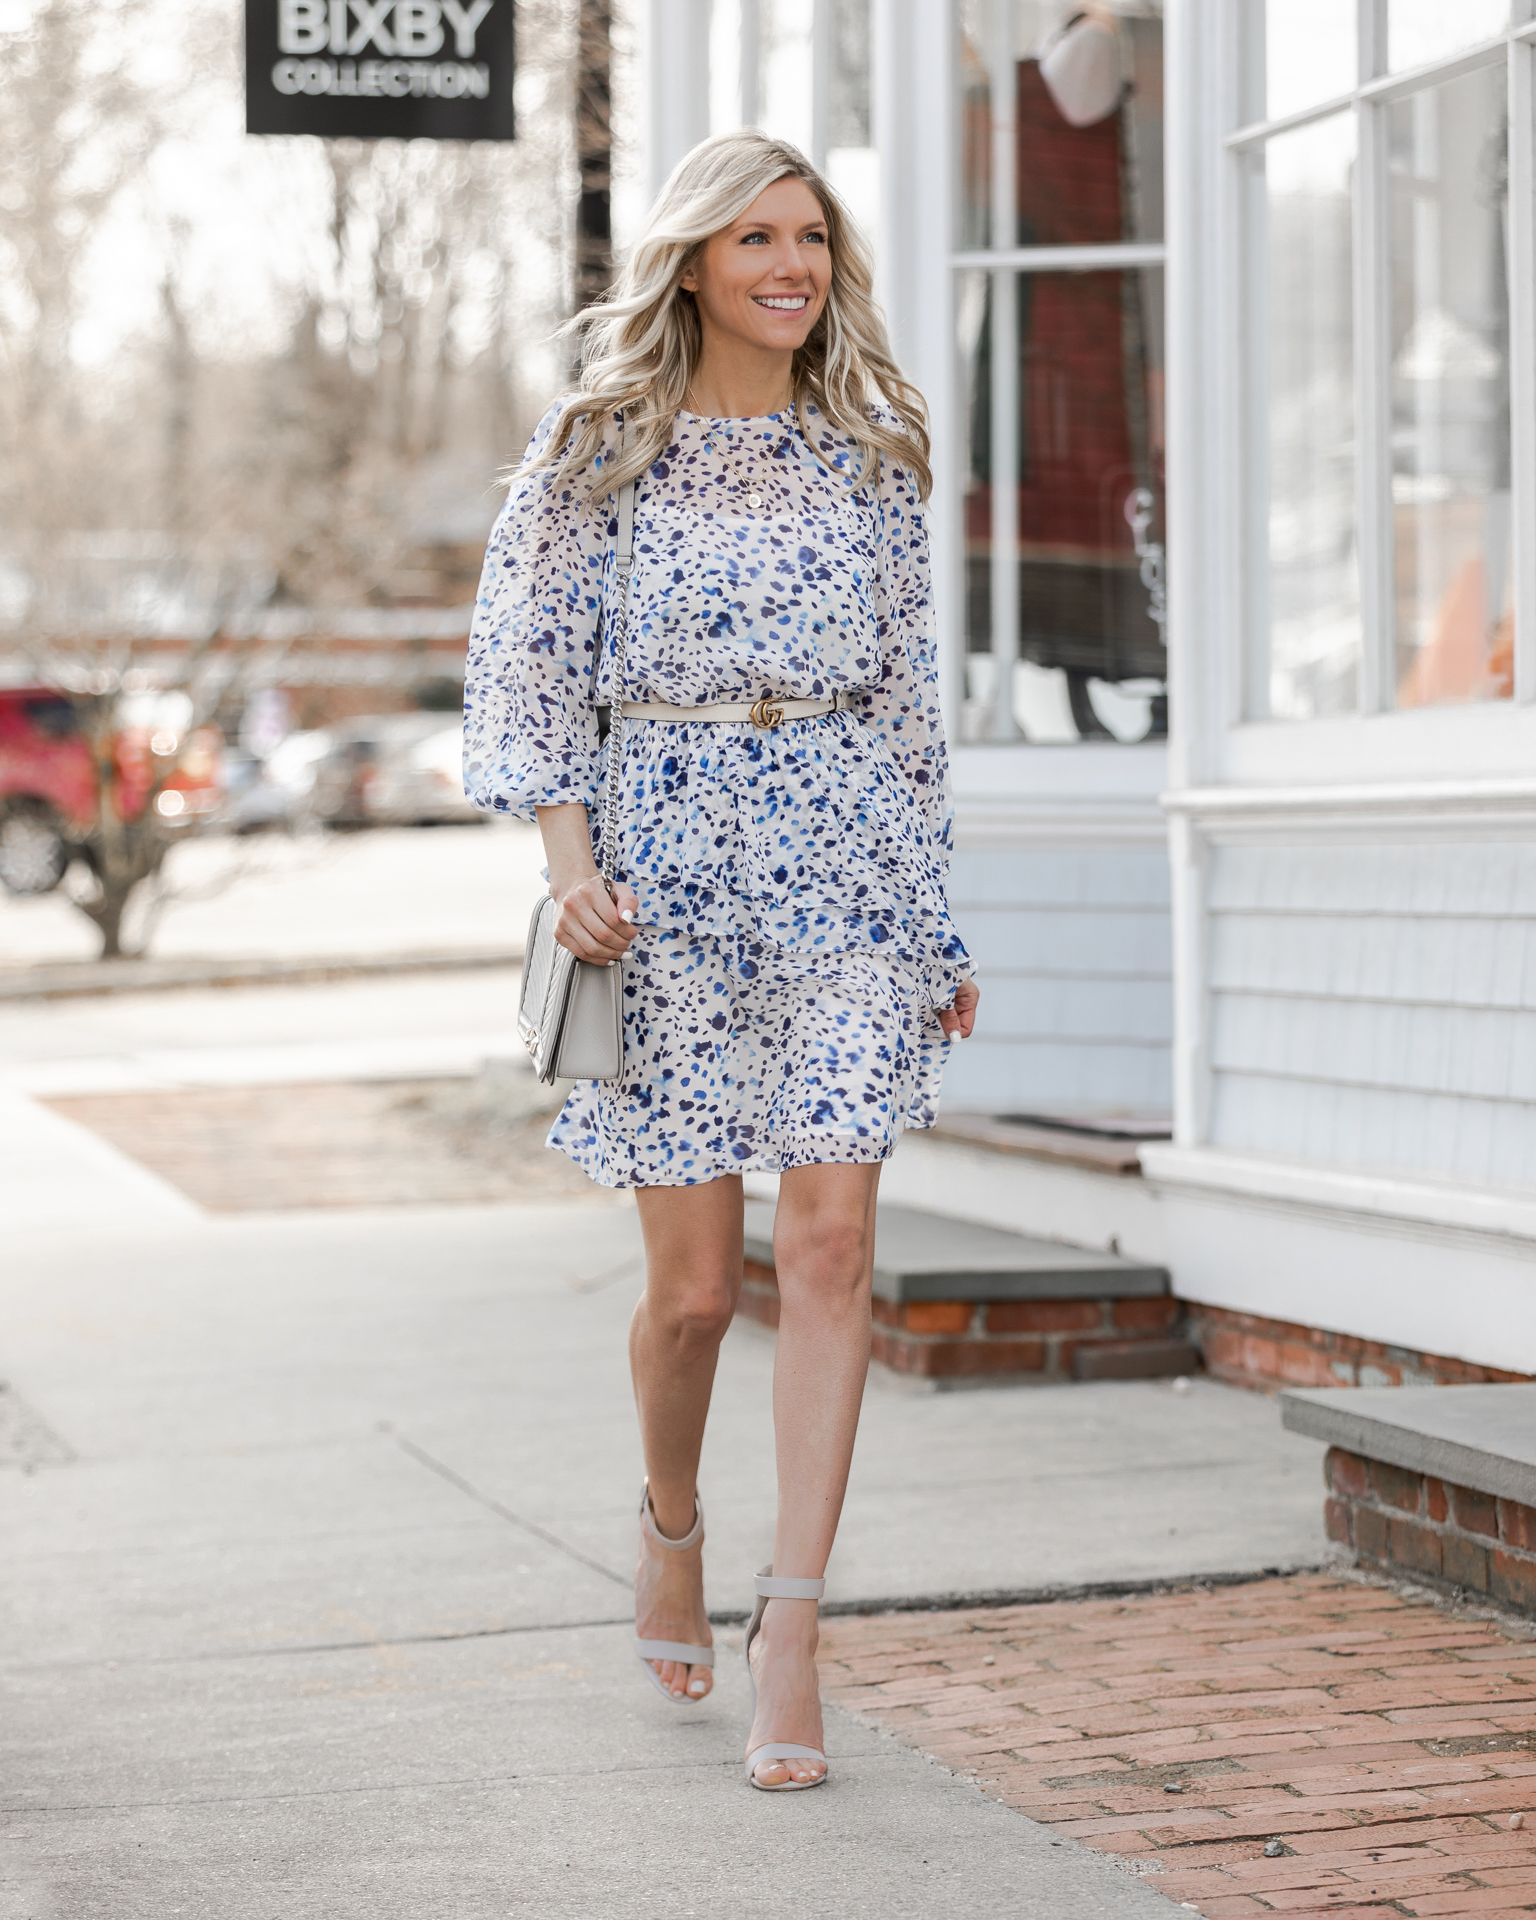 long-sleeve-ruffle-dress-for-spring-the-glamorous-gal